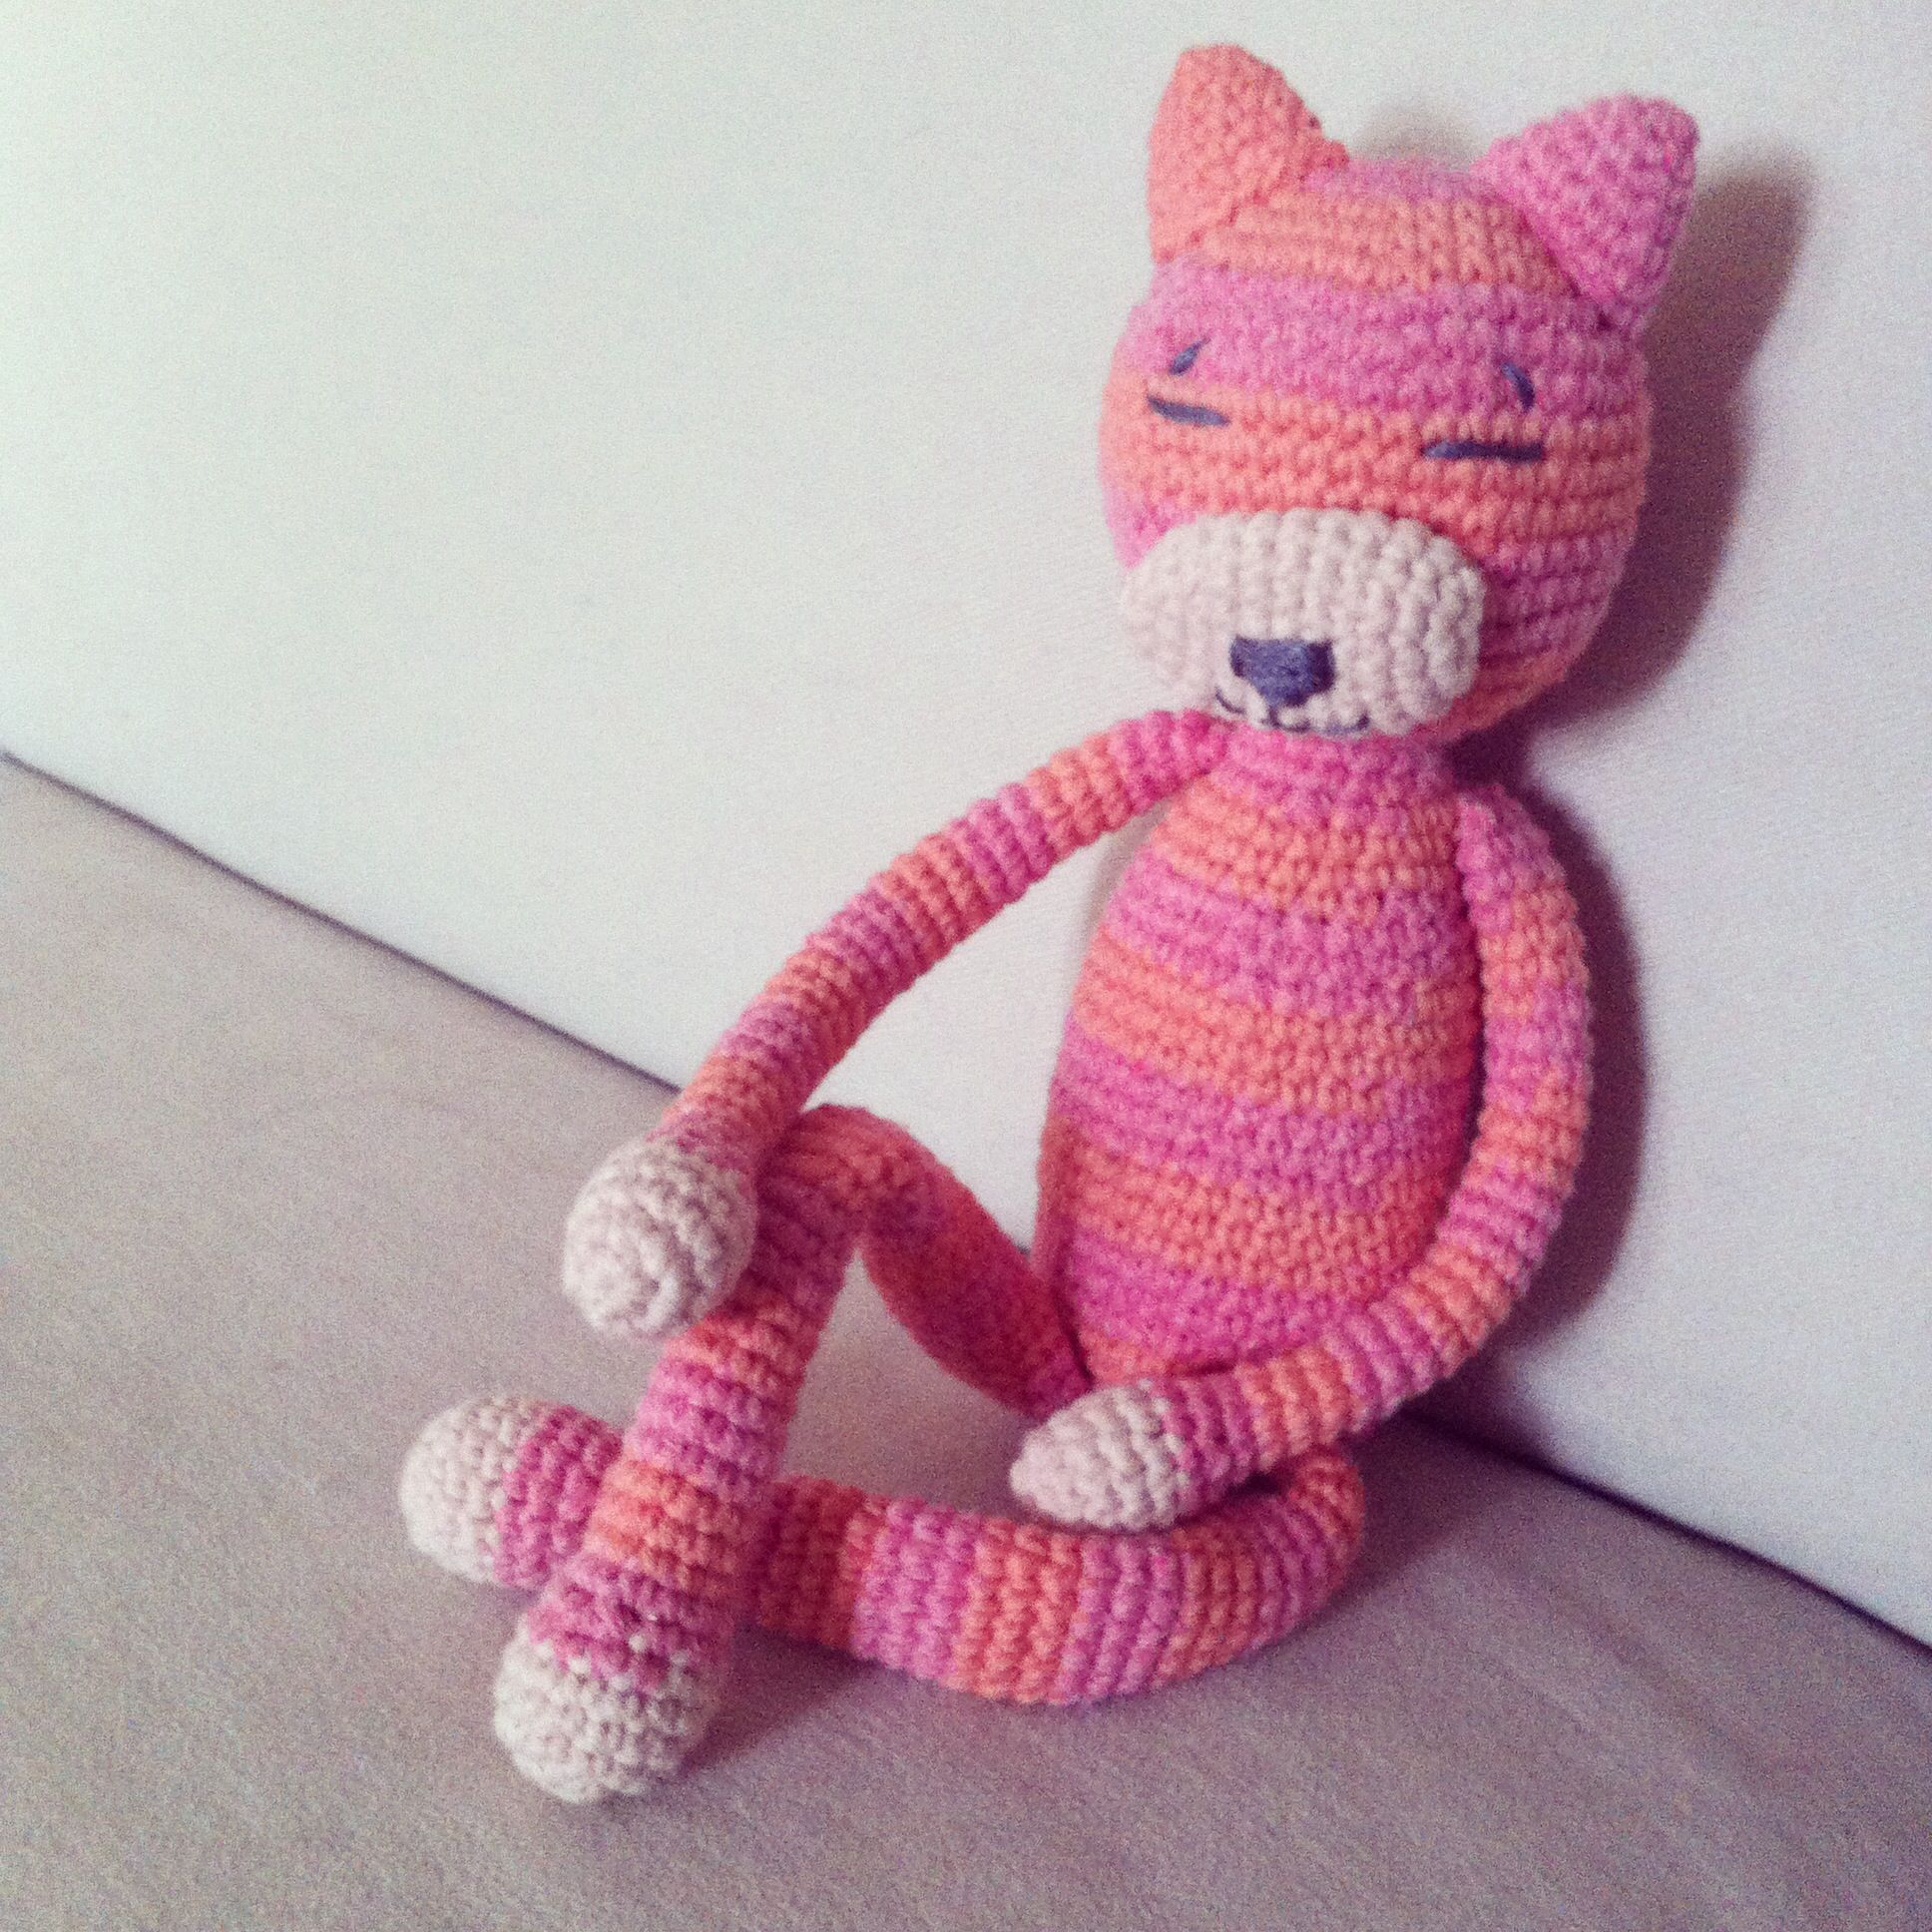 Amineko made by me